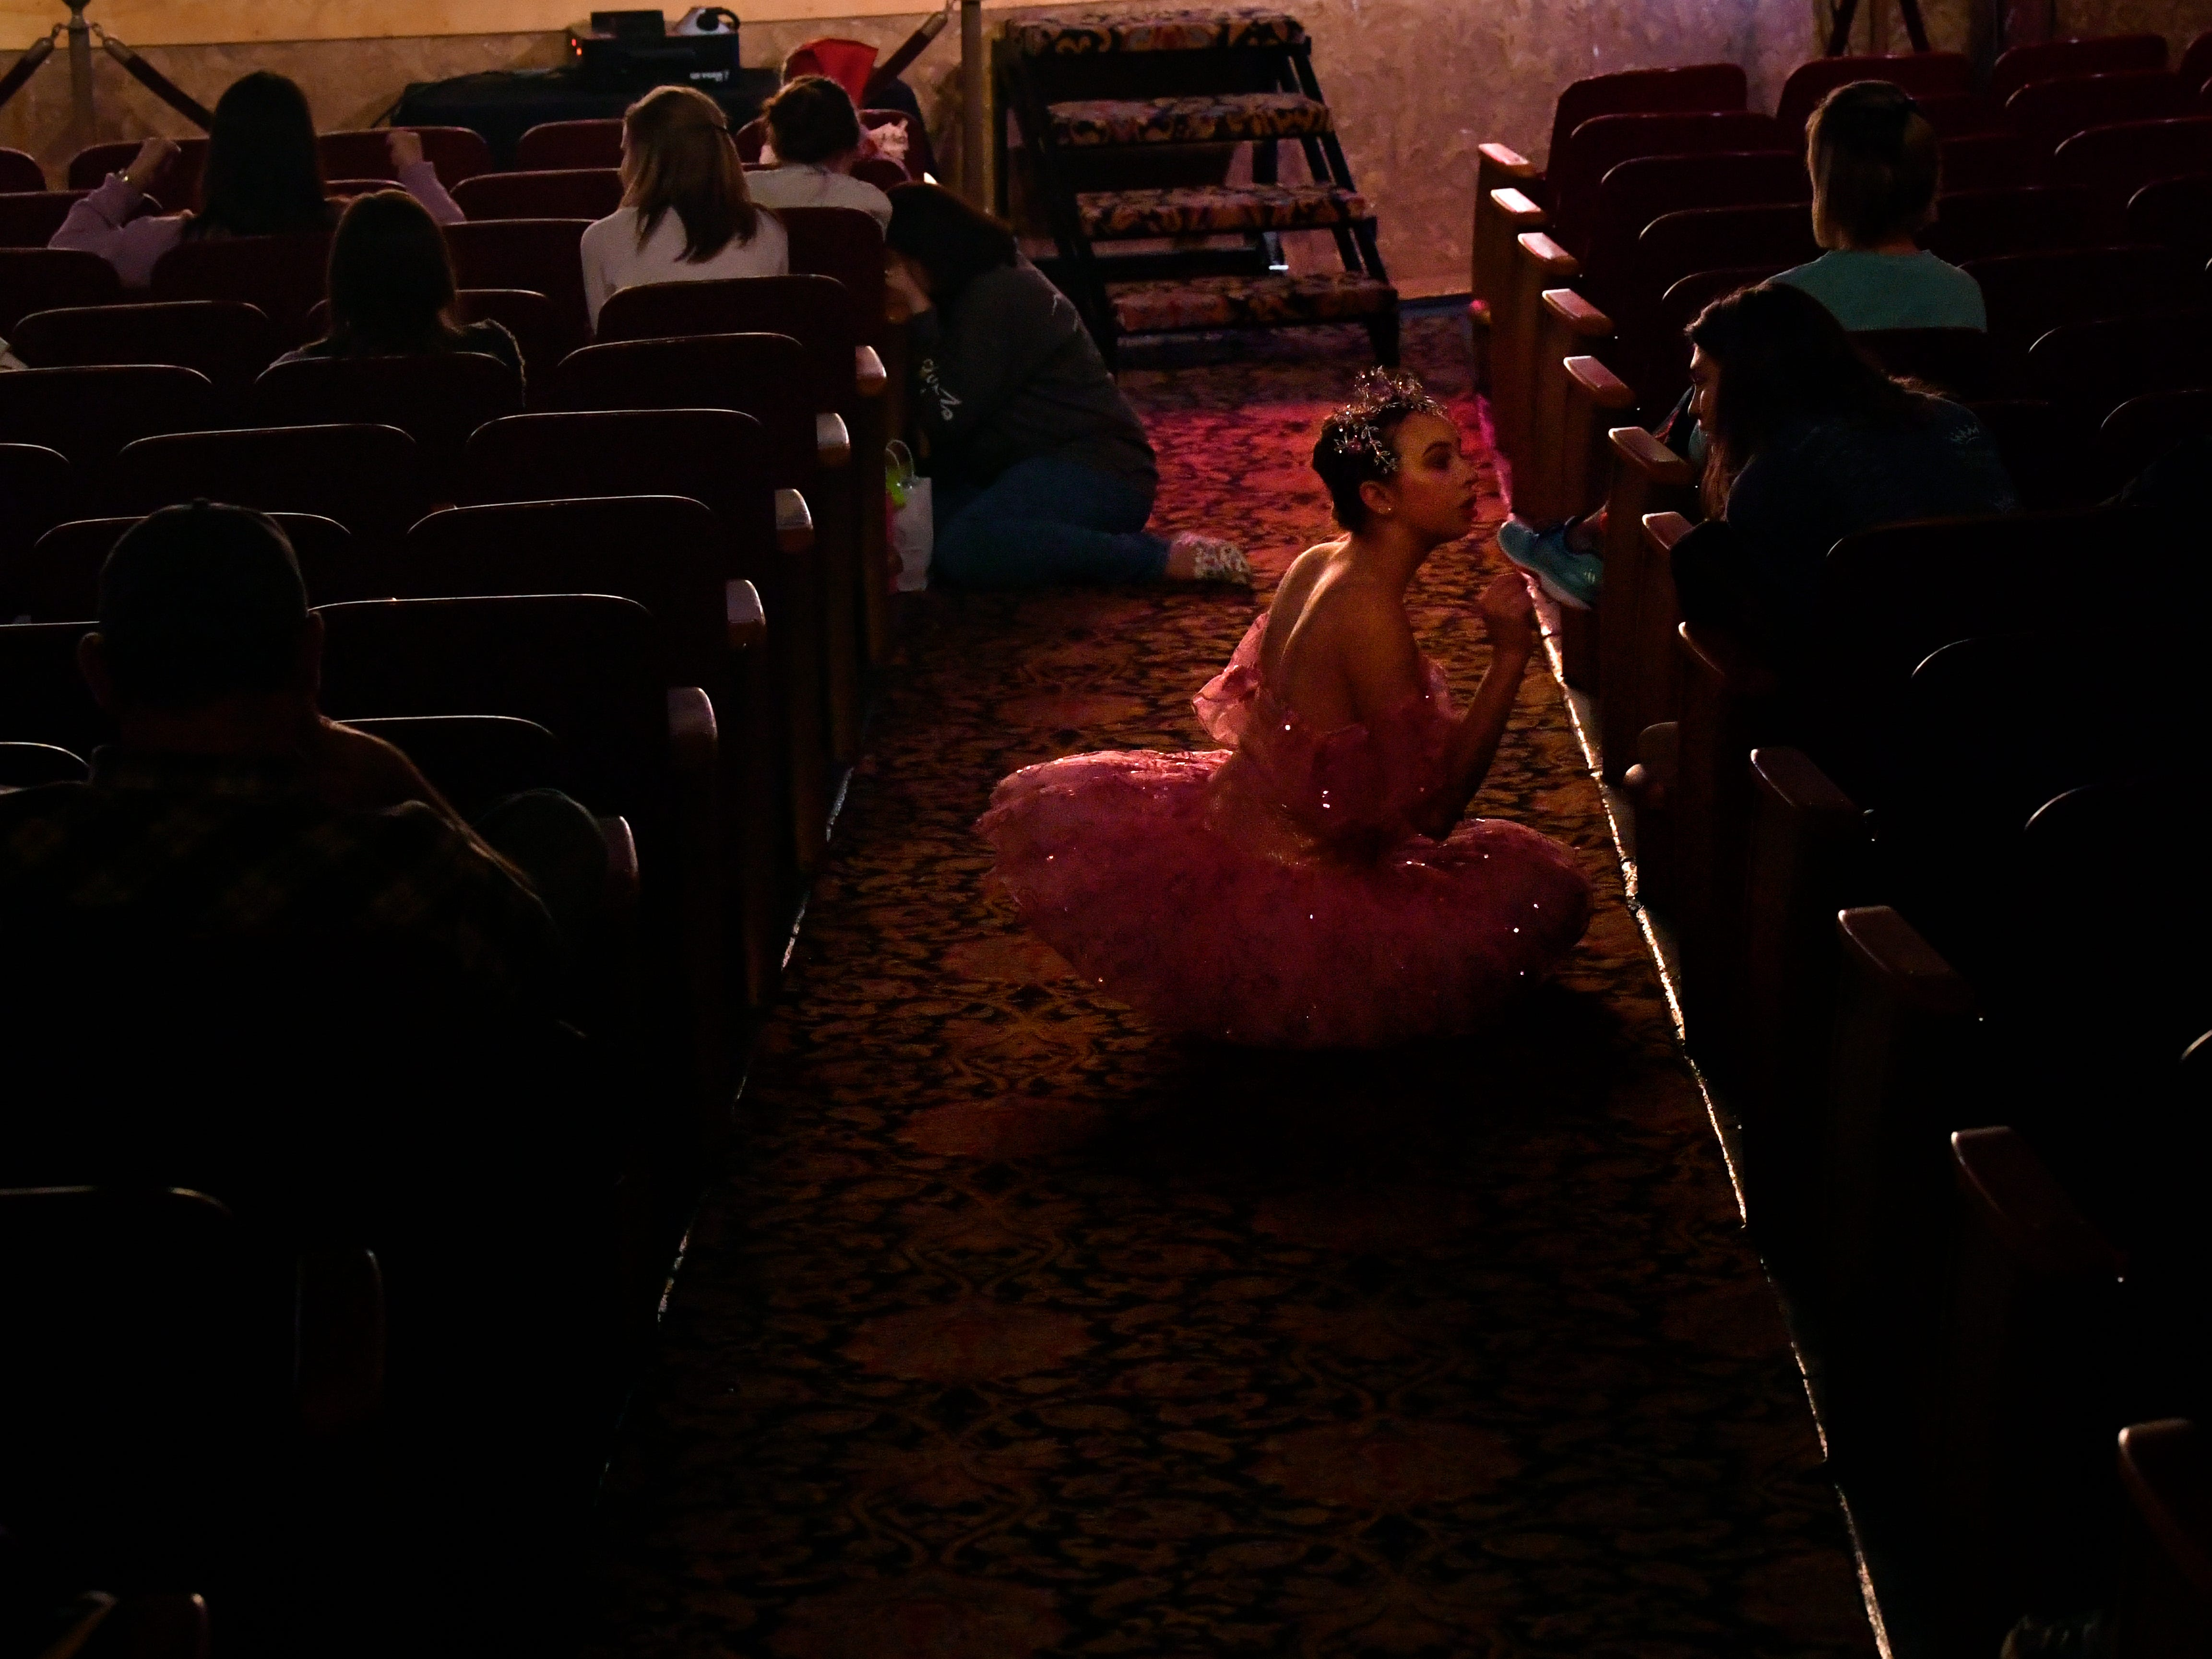 Dalli Albus, one of the dancers playing the Sugar Plum Fairy, rests during rehearsal for The Nutcracker Nov. 14, 2018. This was the 31st year for the Abilene Ballet Theatre production, held at the Paramount Theatre.